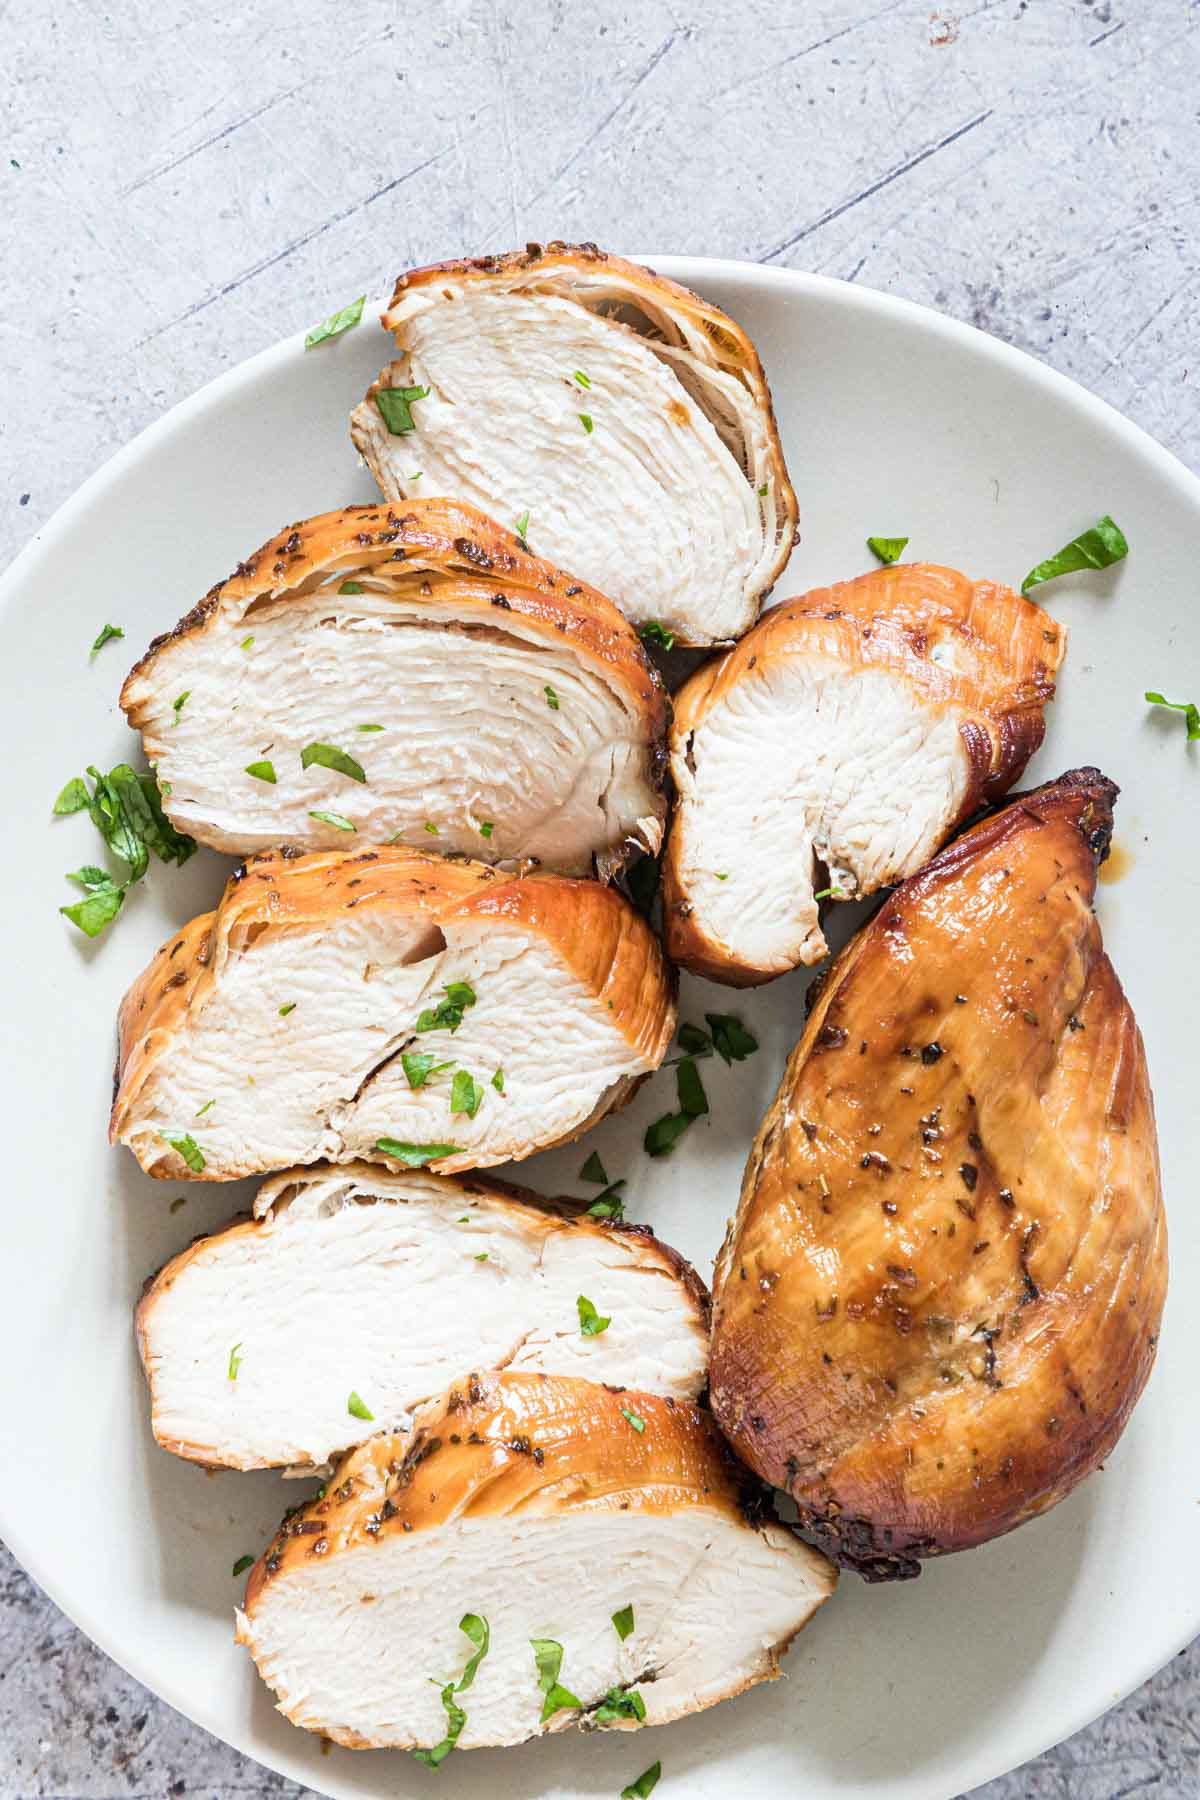 top down view of the cooked air fryer frozen chicken breast sliced and served on a white plate